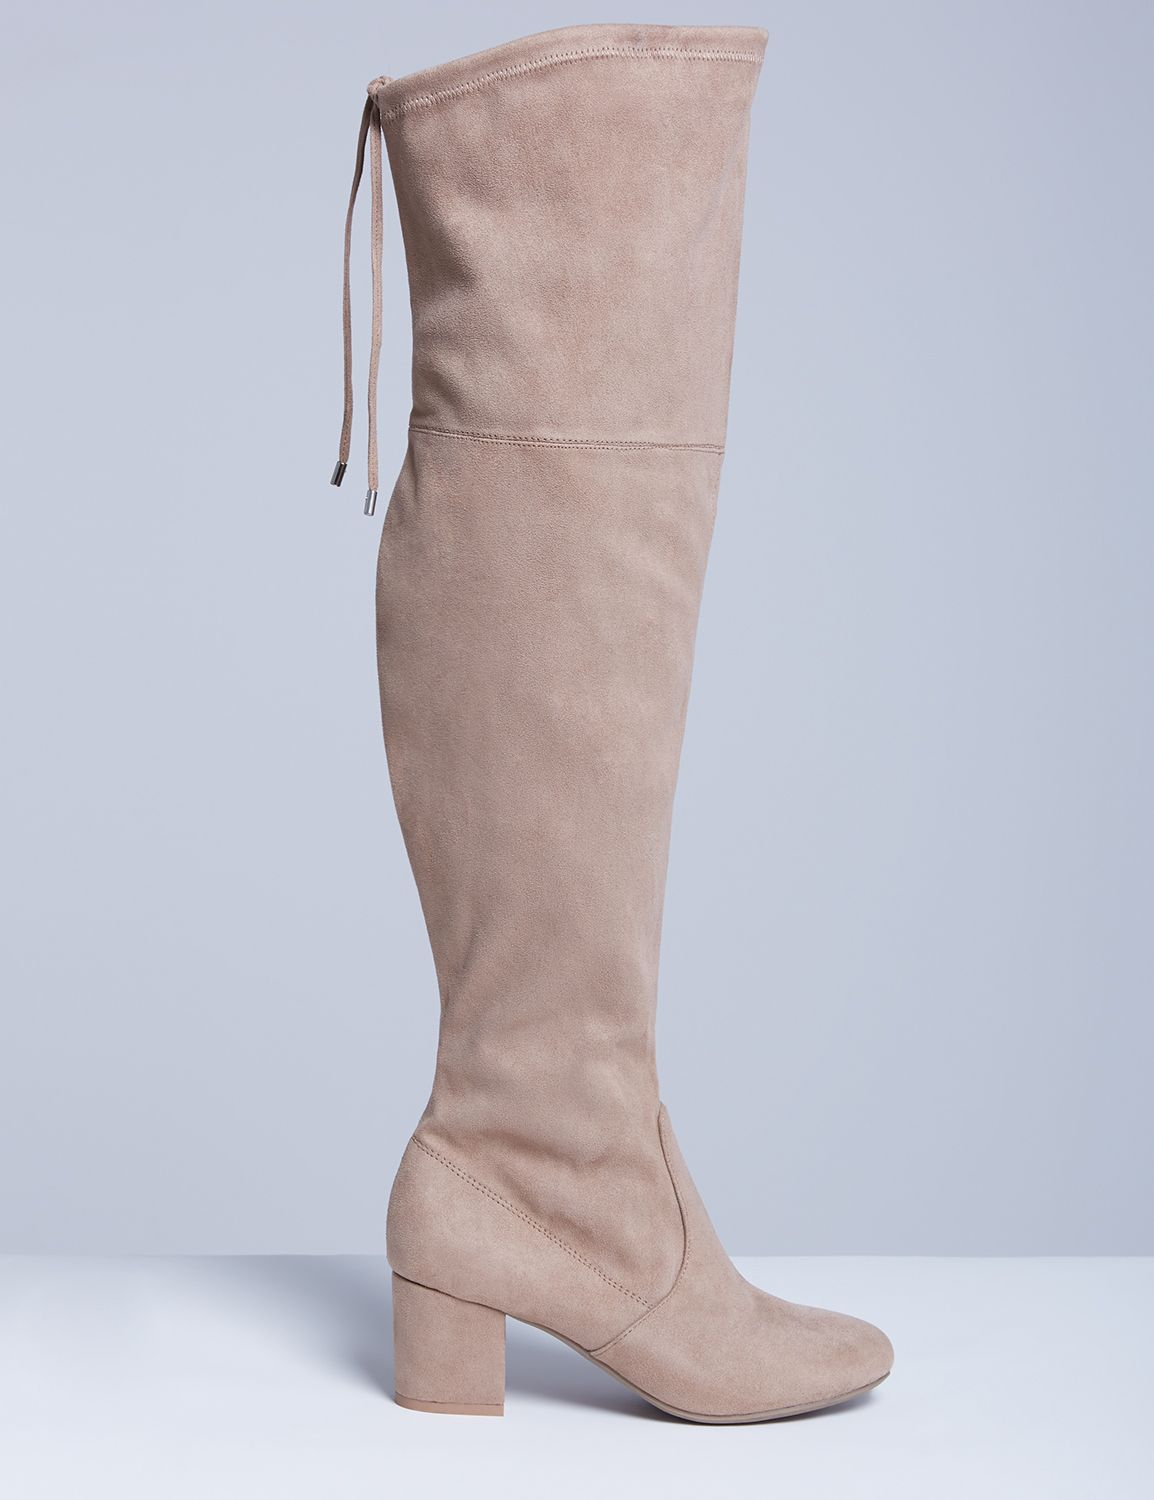 Lane Bryant Womens Over-The-Knee Boot With Low Block Heel 7W Taupe